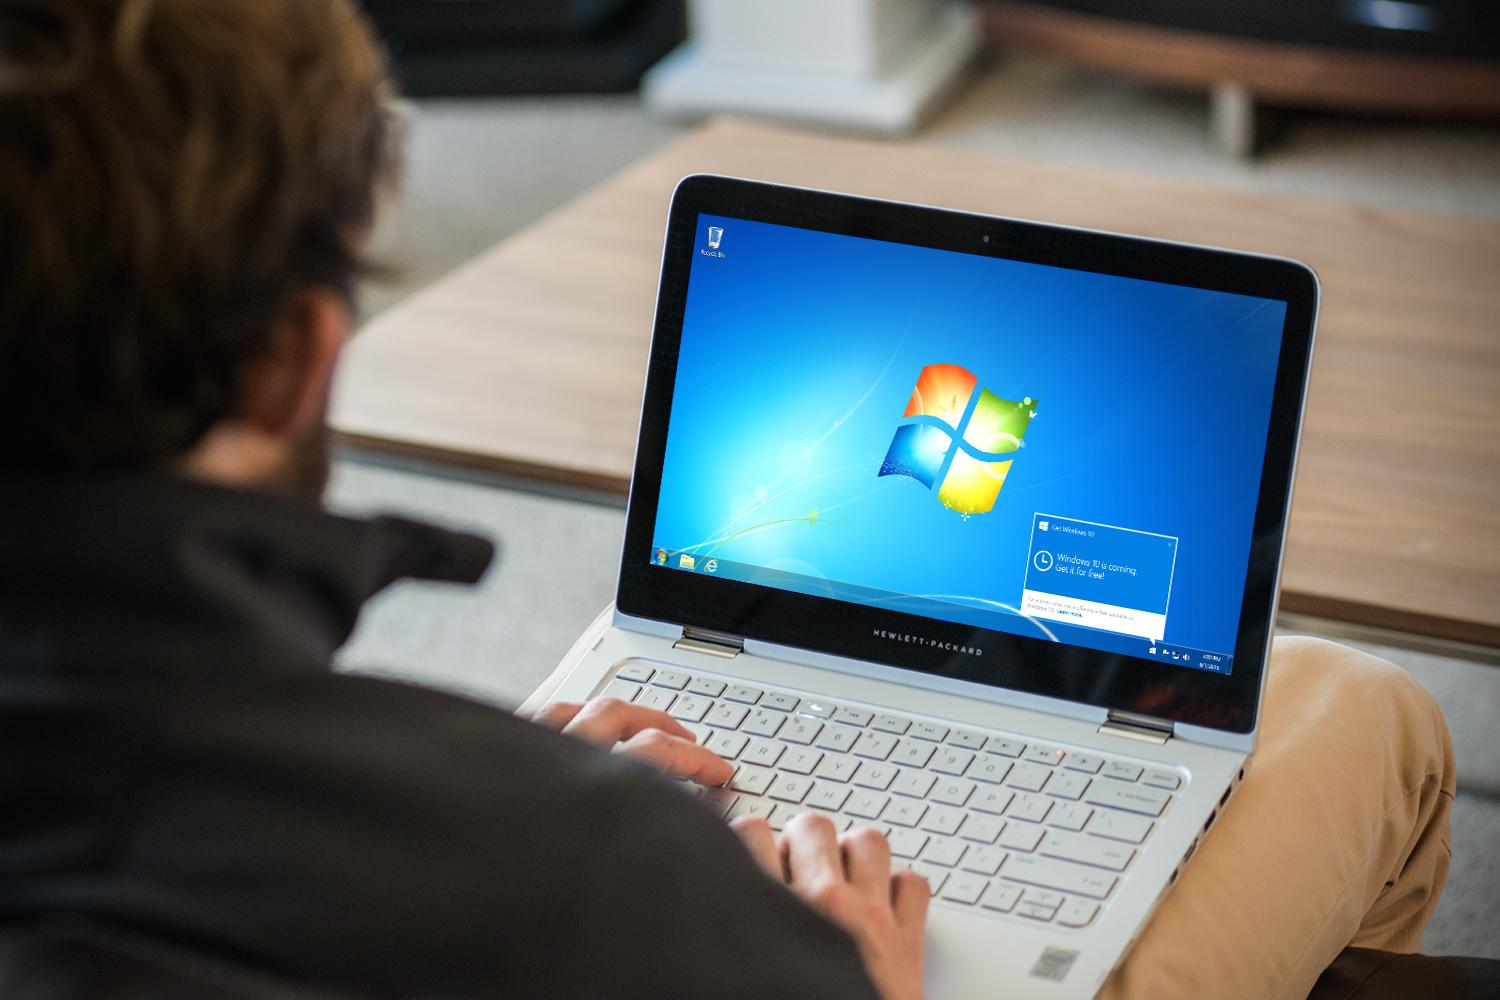 Every device you own could soon run the same Windows 10 user interface